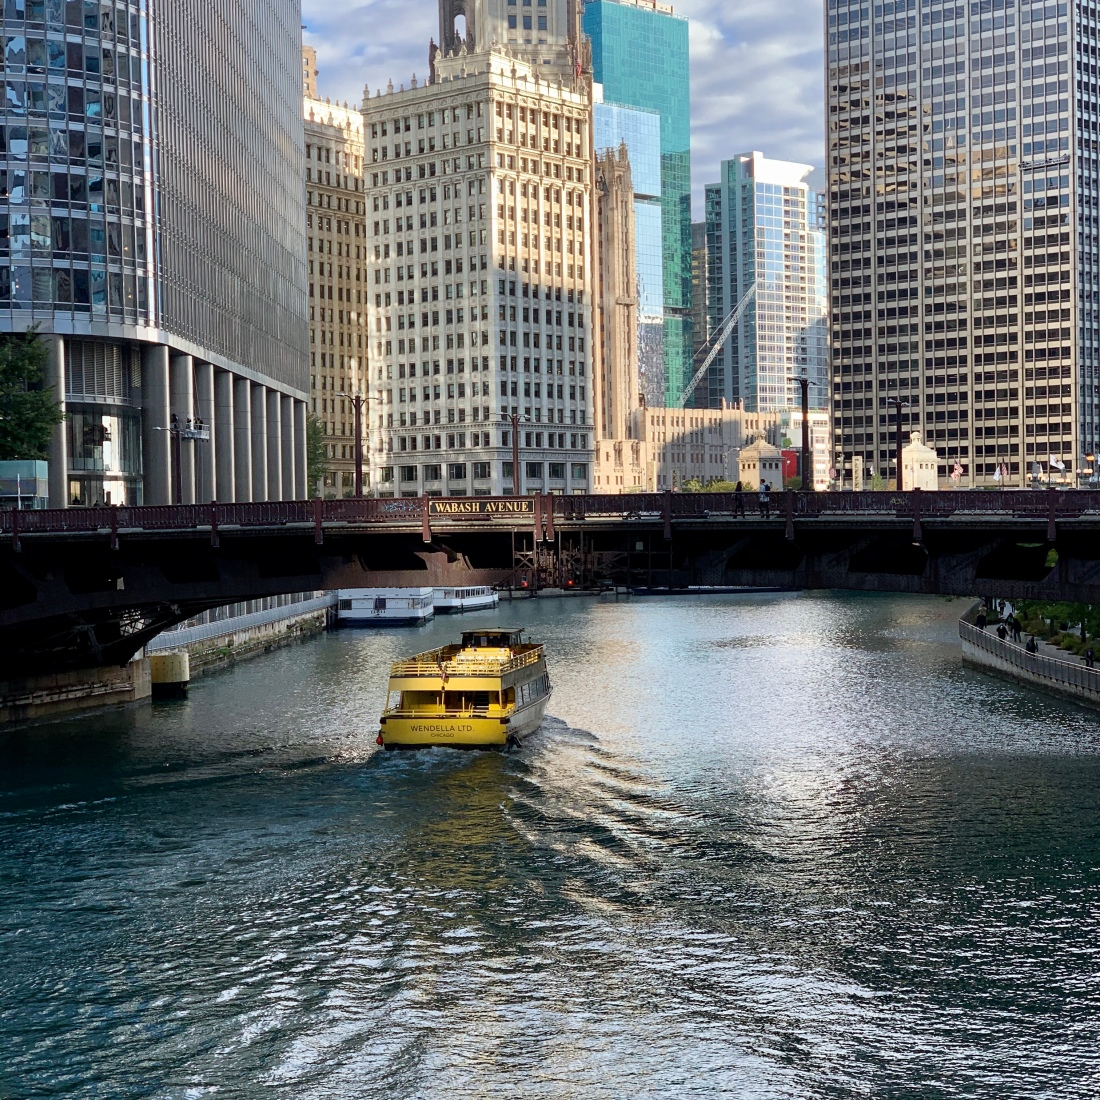 Downtown Chicago, boat and buildings